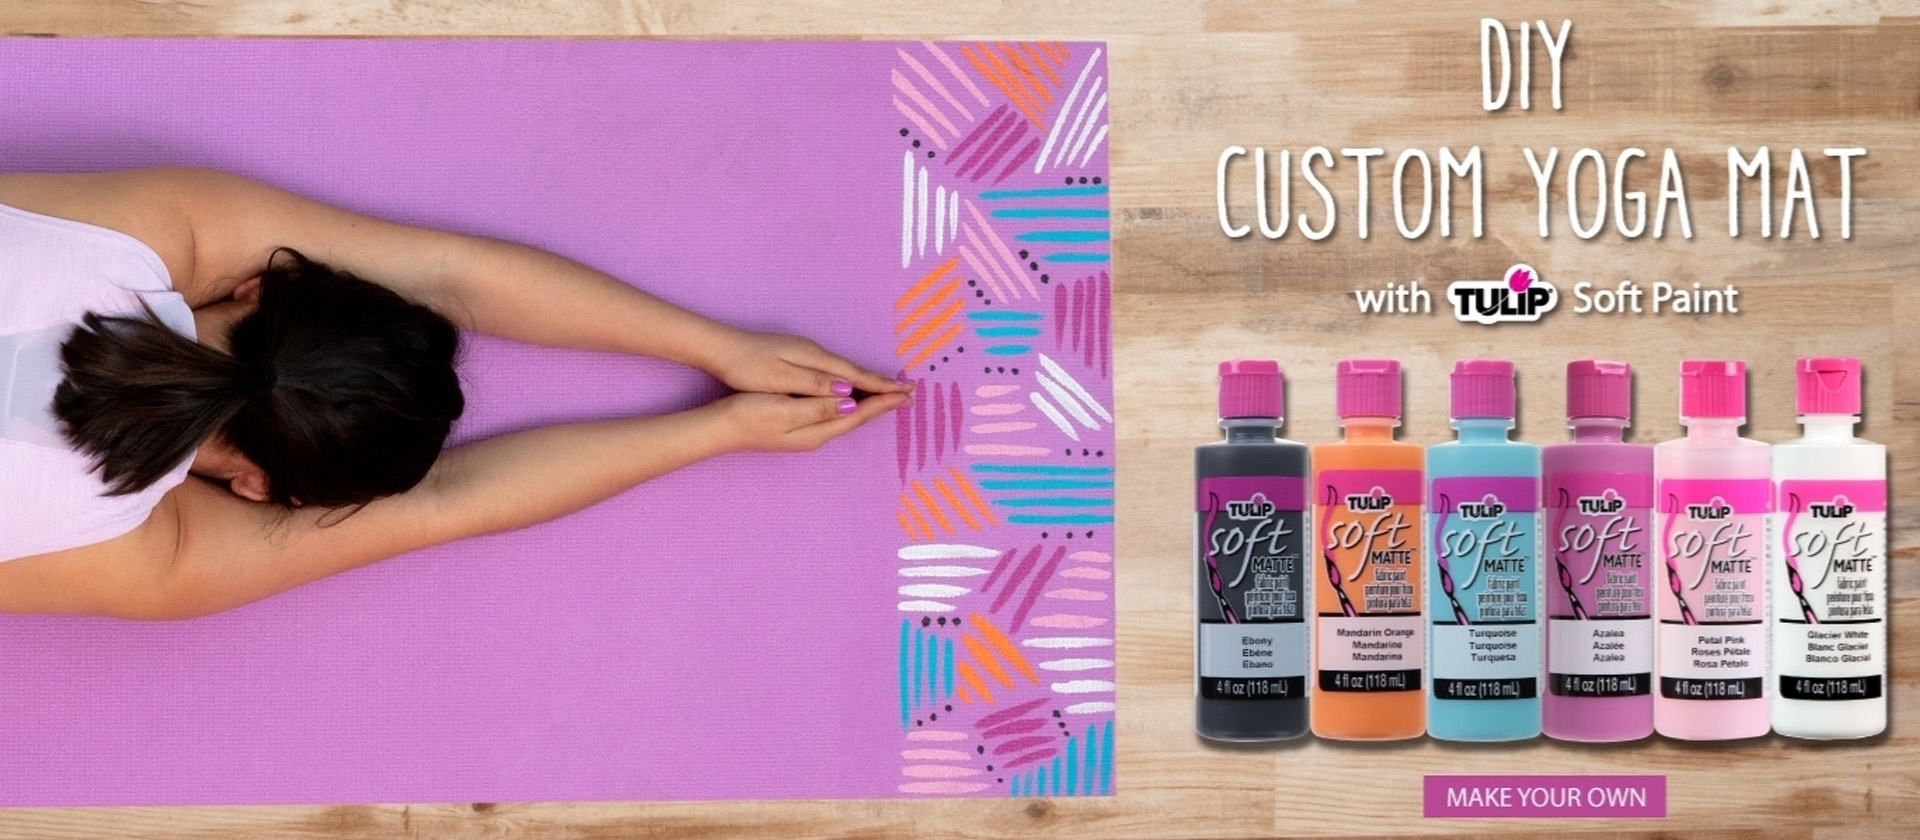 DIY Custom Yoga Mat with Tulip Soft Paint